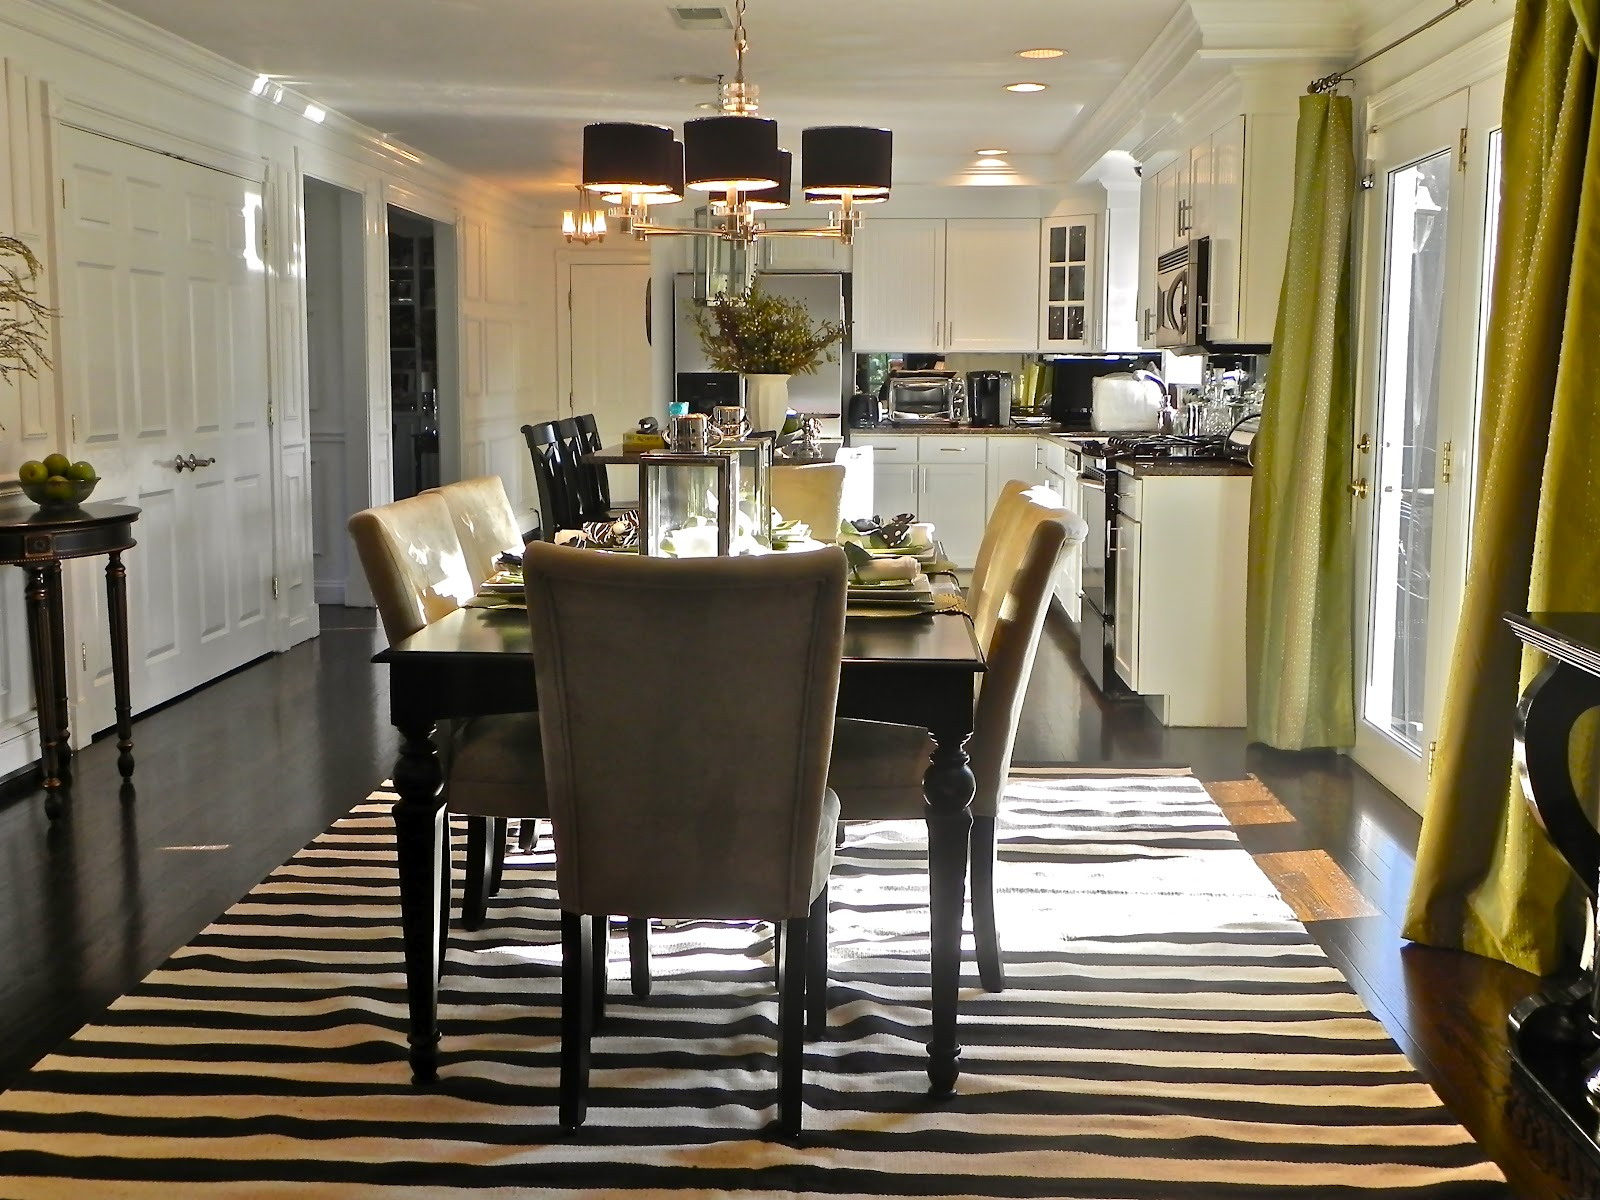 Stripes In The Dining Area